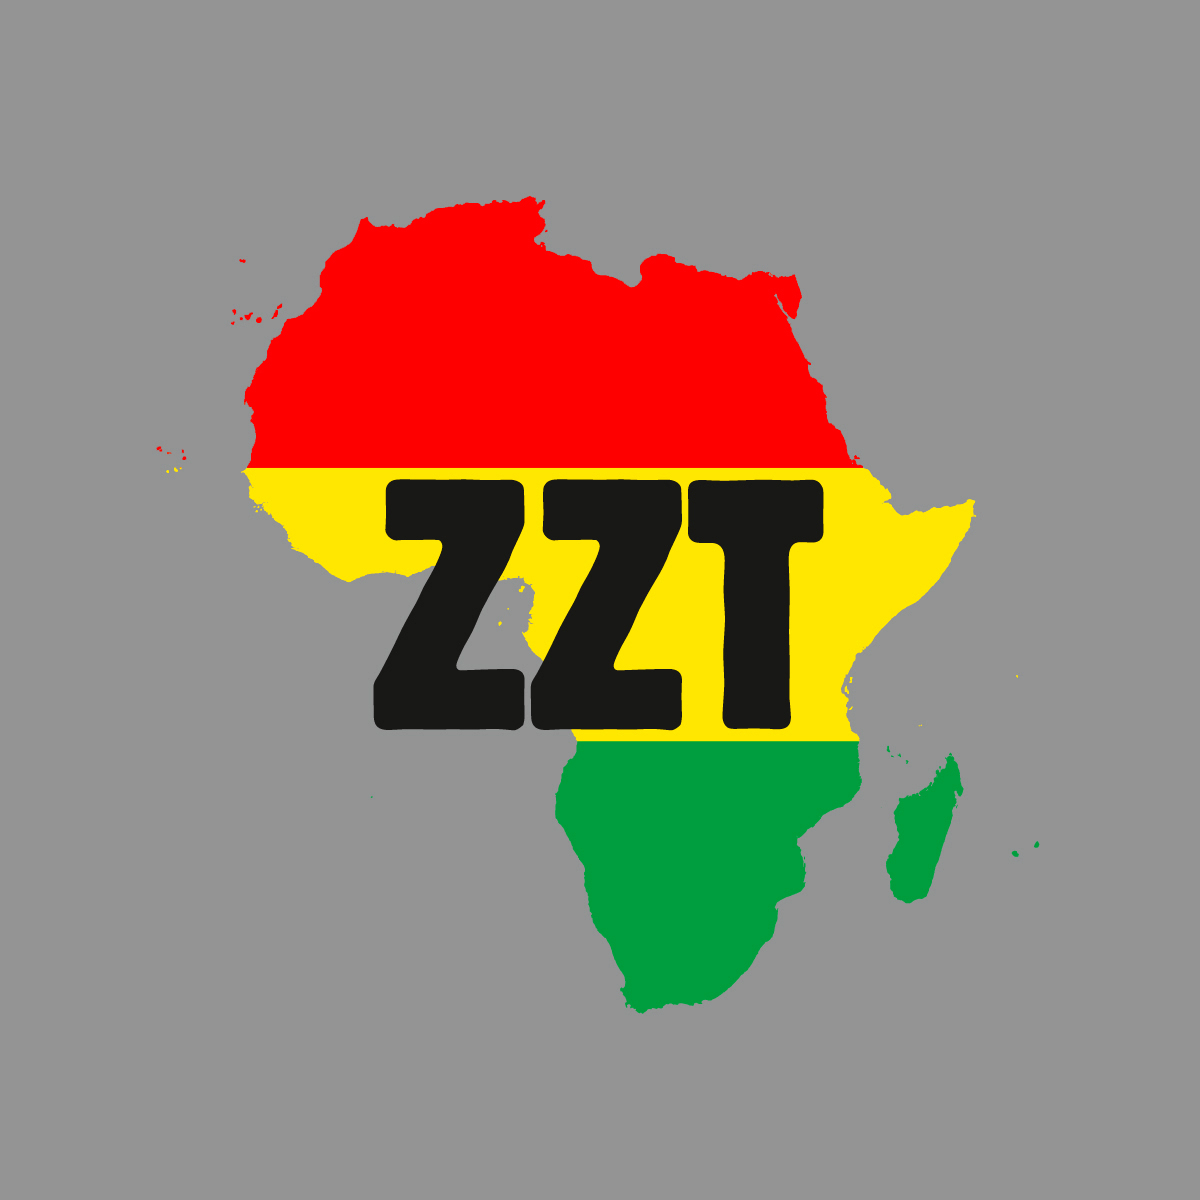 zzzz ZZT   Zzafrika (Afrojack + Gessafelstein Remixes)